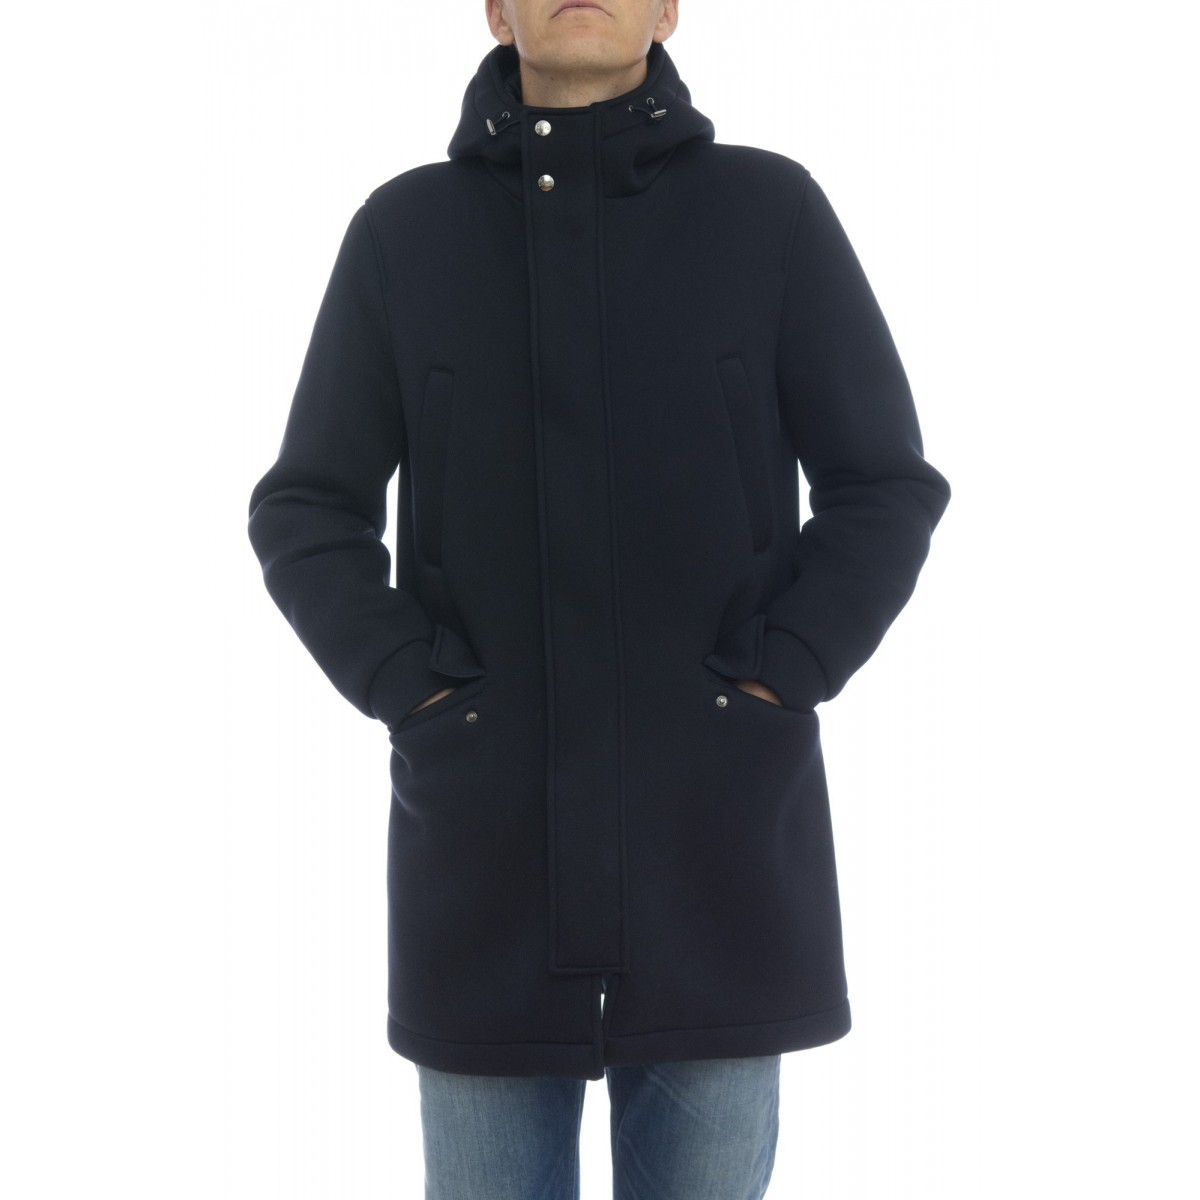 Jacket Man- Pa025ur 12400 resort winter scuba made in italy